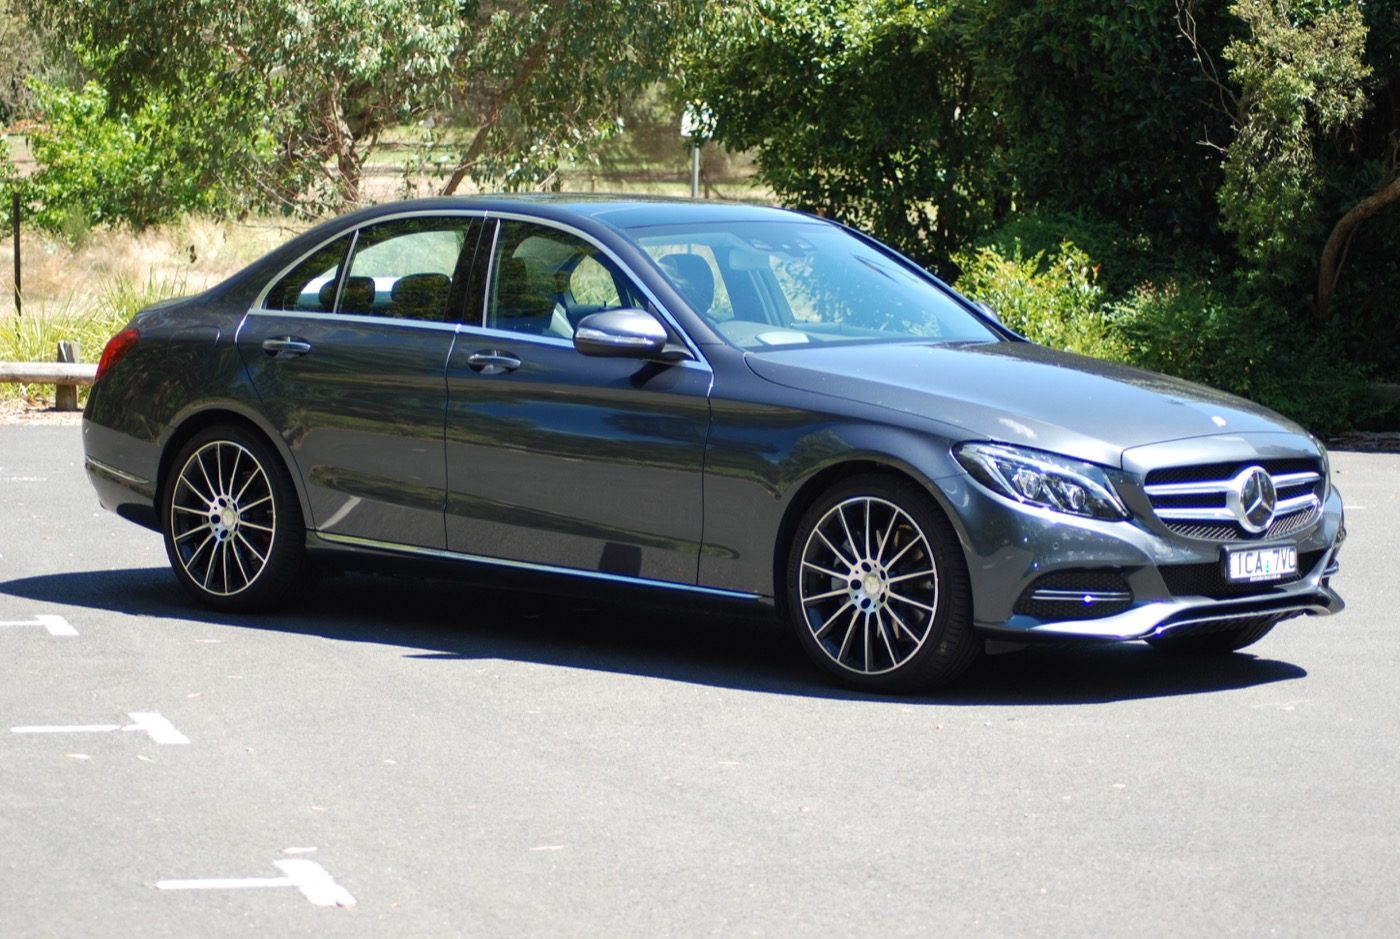 Mercedes Benz C300 Bluetec Hybrid Amg Car Review ...